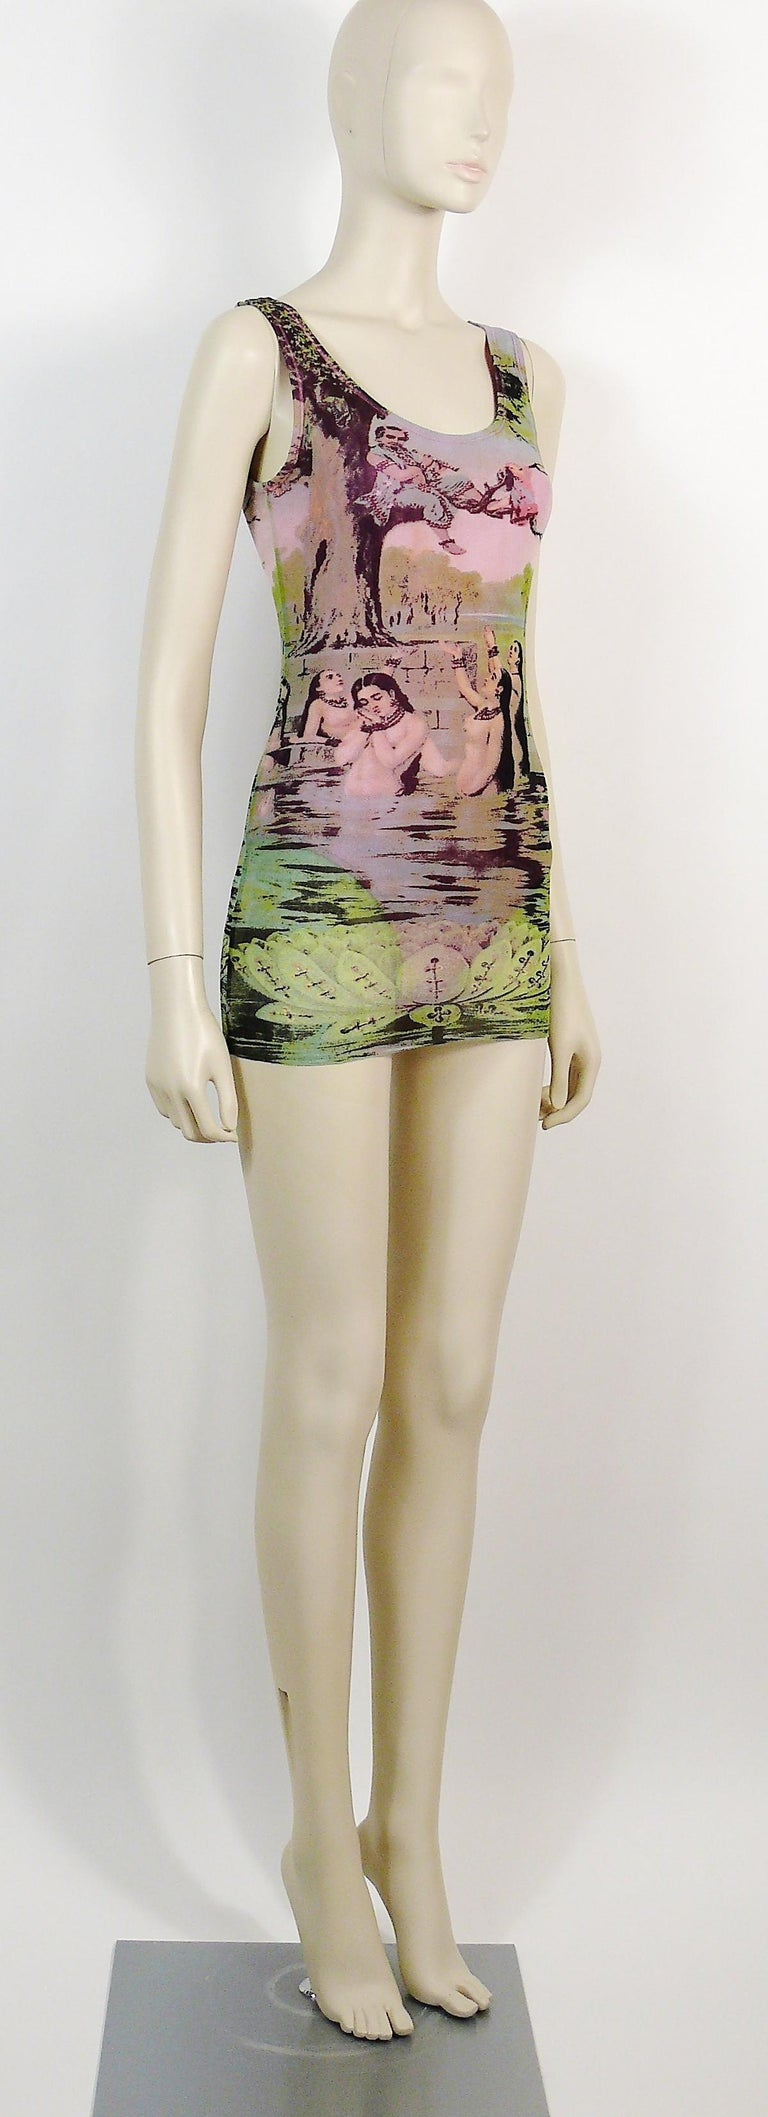 JEAN PAUL GAULTIER vintage FUZZI mesh tank micro mini dress featuring a gorgeous Oriental Bath scene print.  This dress is fully lined with a pink nylon bodysuit (snap button closure).  Label reads JEAN PAUL GAULTIER MAILLE Made in Italy.  Size tag